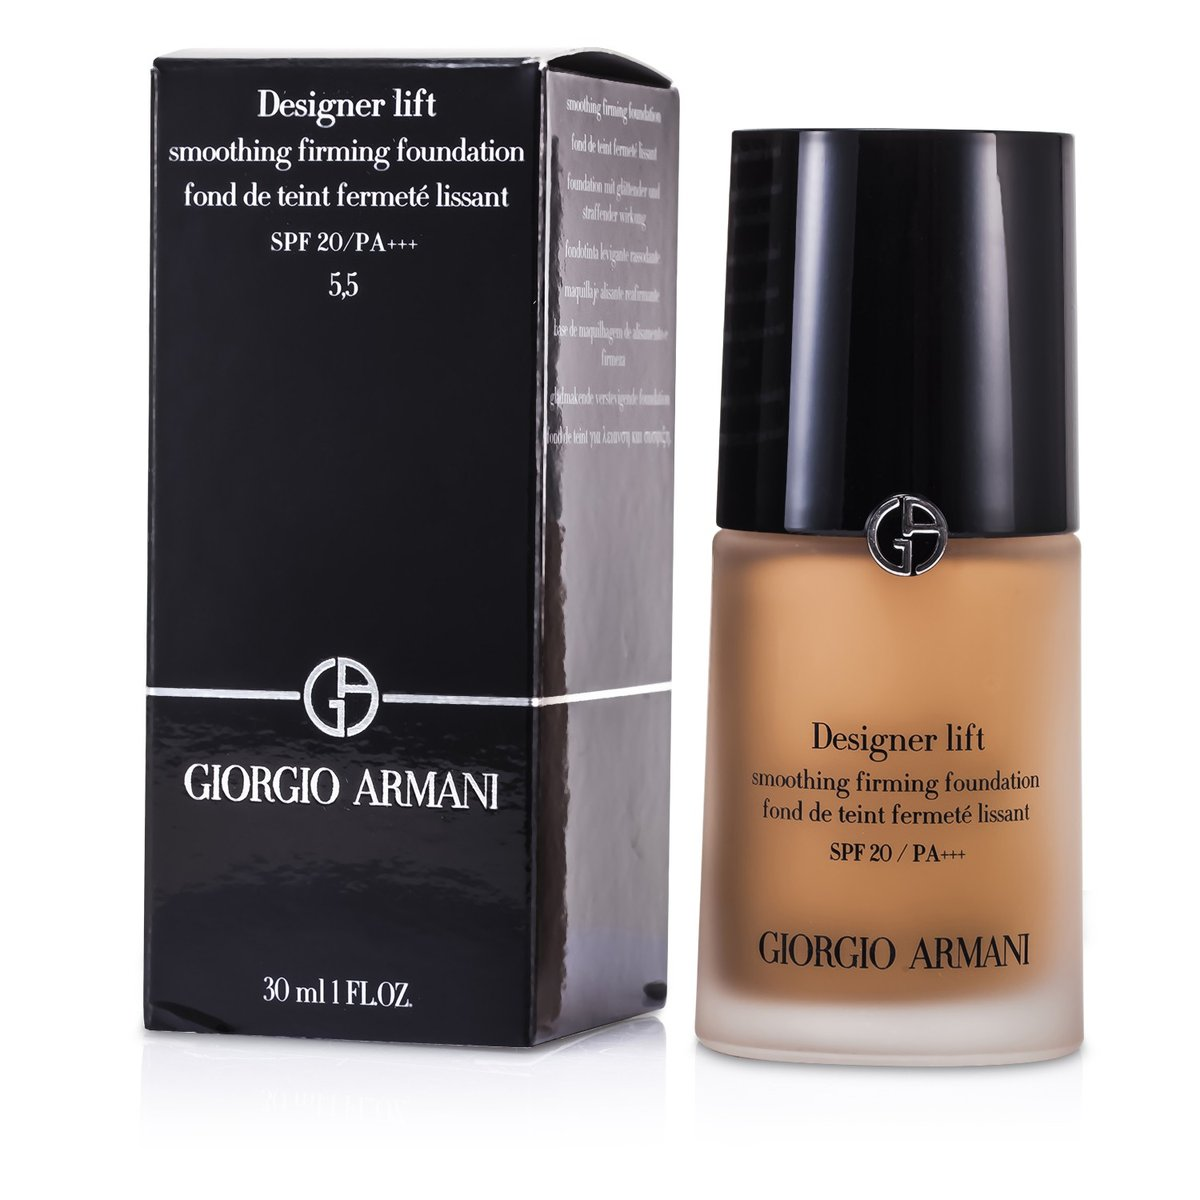 Designer Lift Smoothing Firming Foundation SPF20 - # 5.5  -[Parallel Import Product]